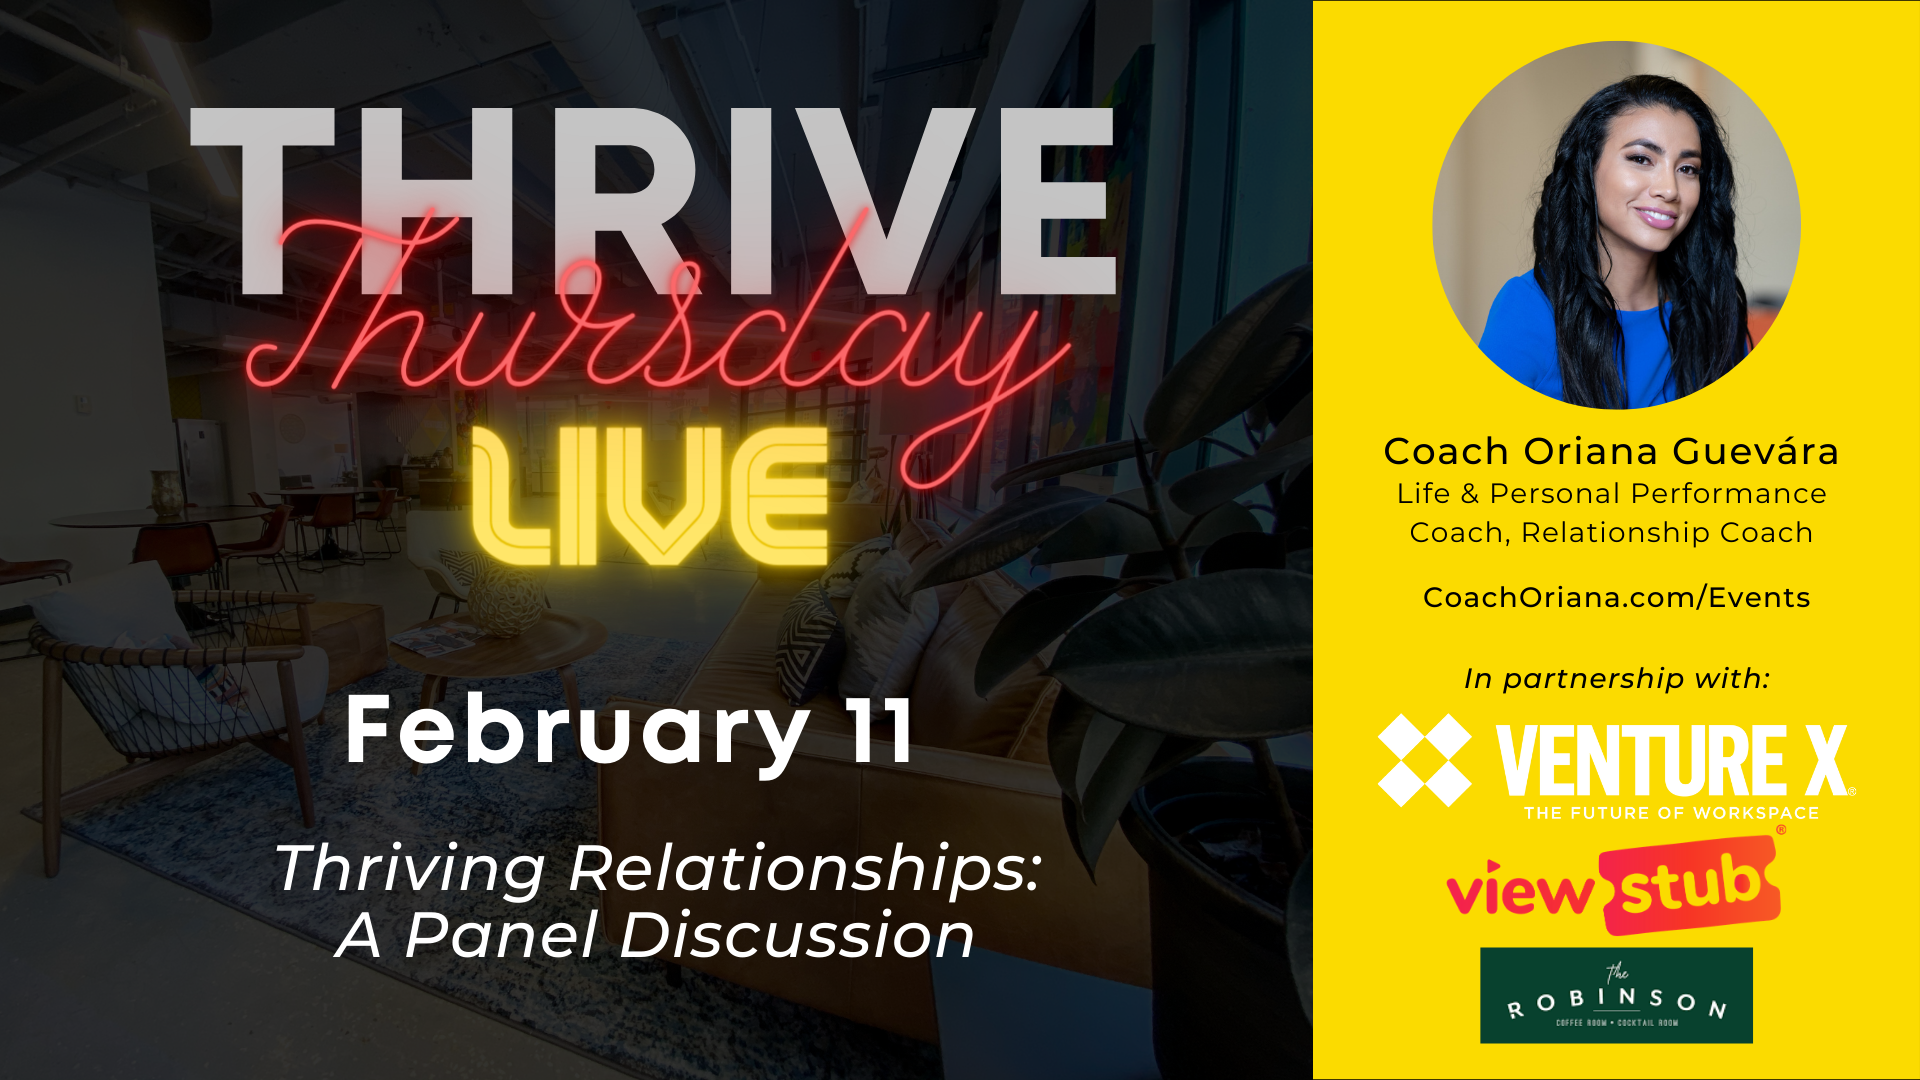 Photo for Thrive Thursday LIVE February @ Venture X Downtown Orlando on ViewStub